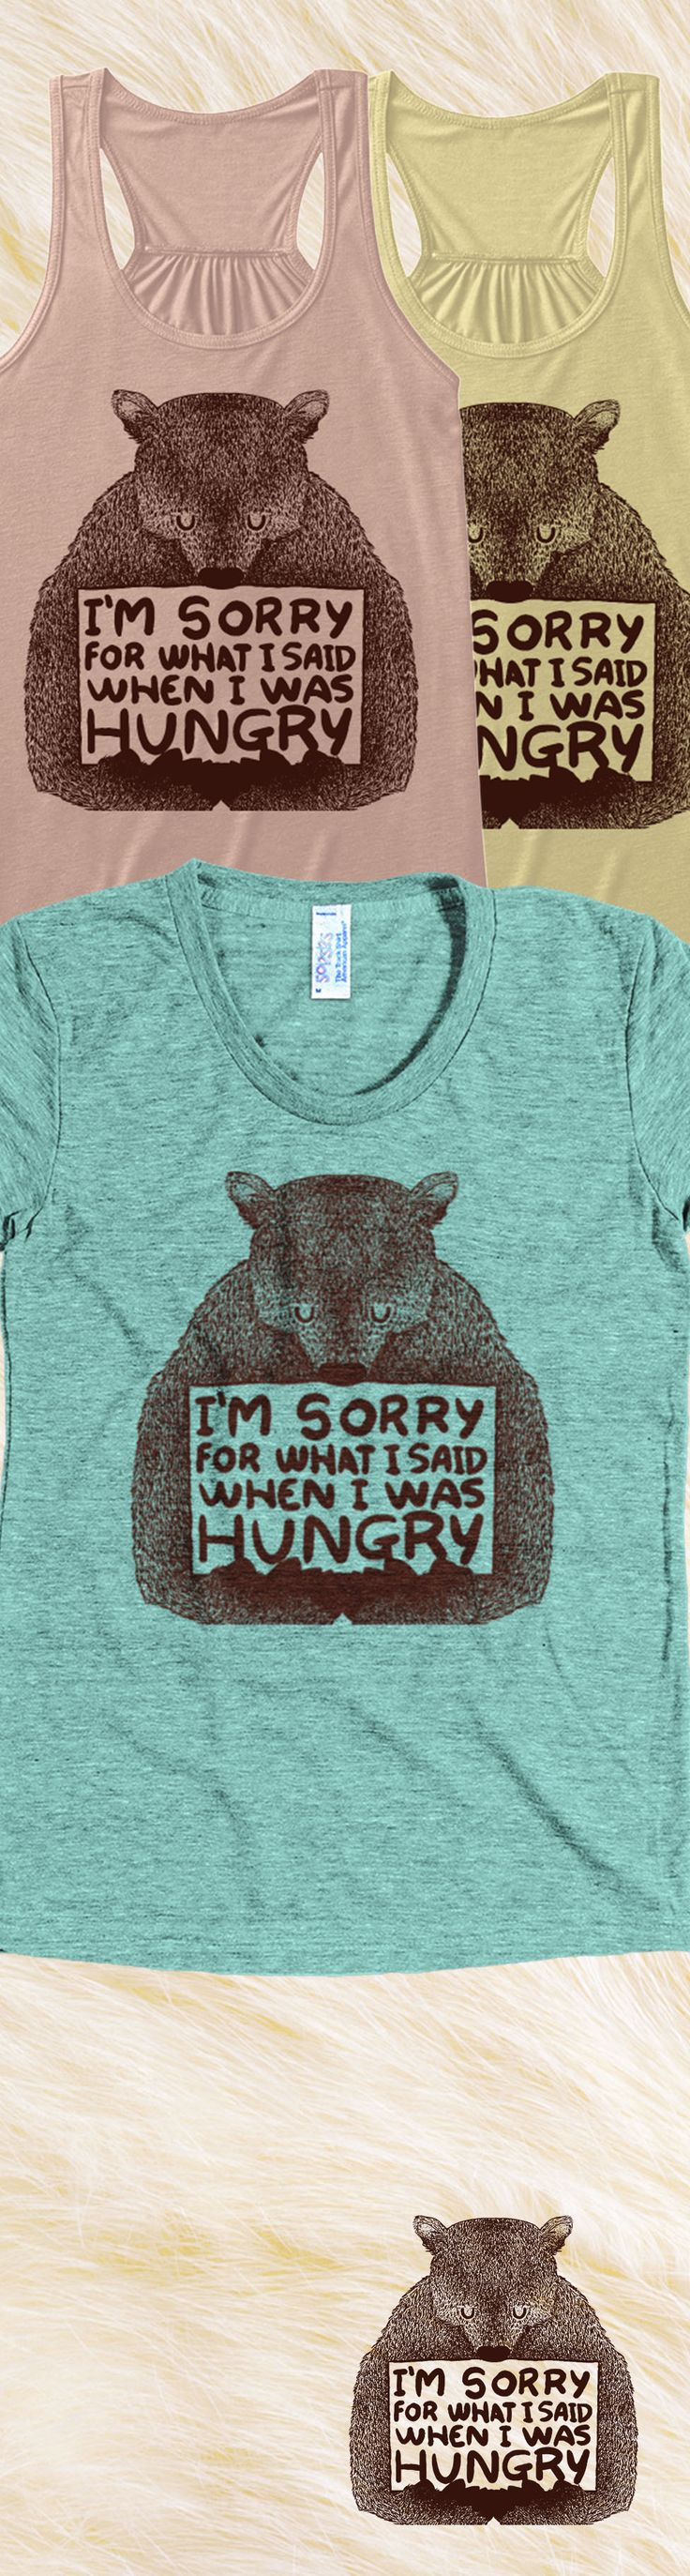 We've all said mean things when we are hangry...Not sold in stores and only 2 days left for FREE SHIPPING! Grab yours or gift it to a friend, you will both love it